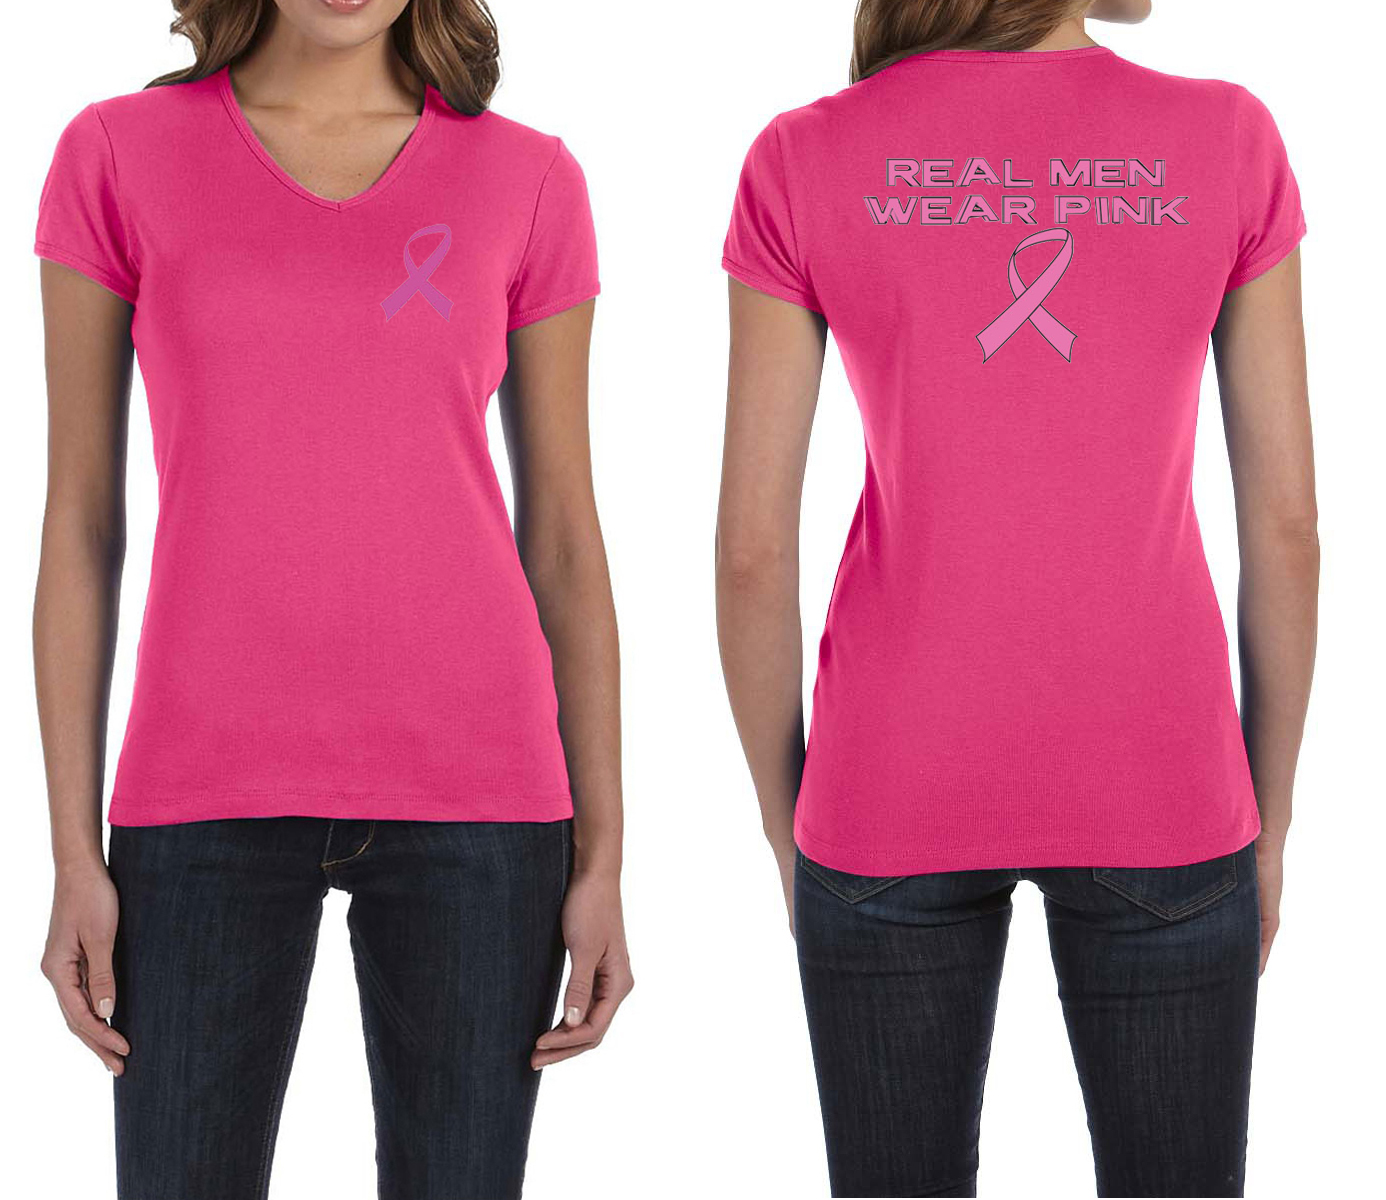 Breast Cancer Awareness Real Men Wear Pink Shirts - BC Awareness Tees